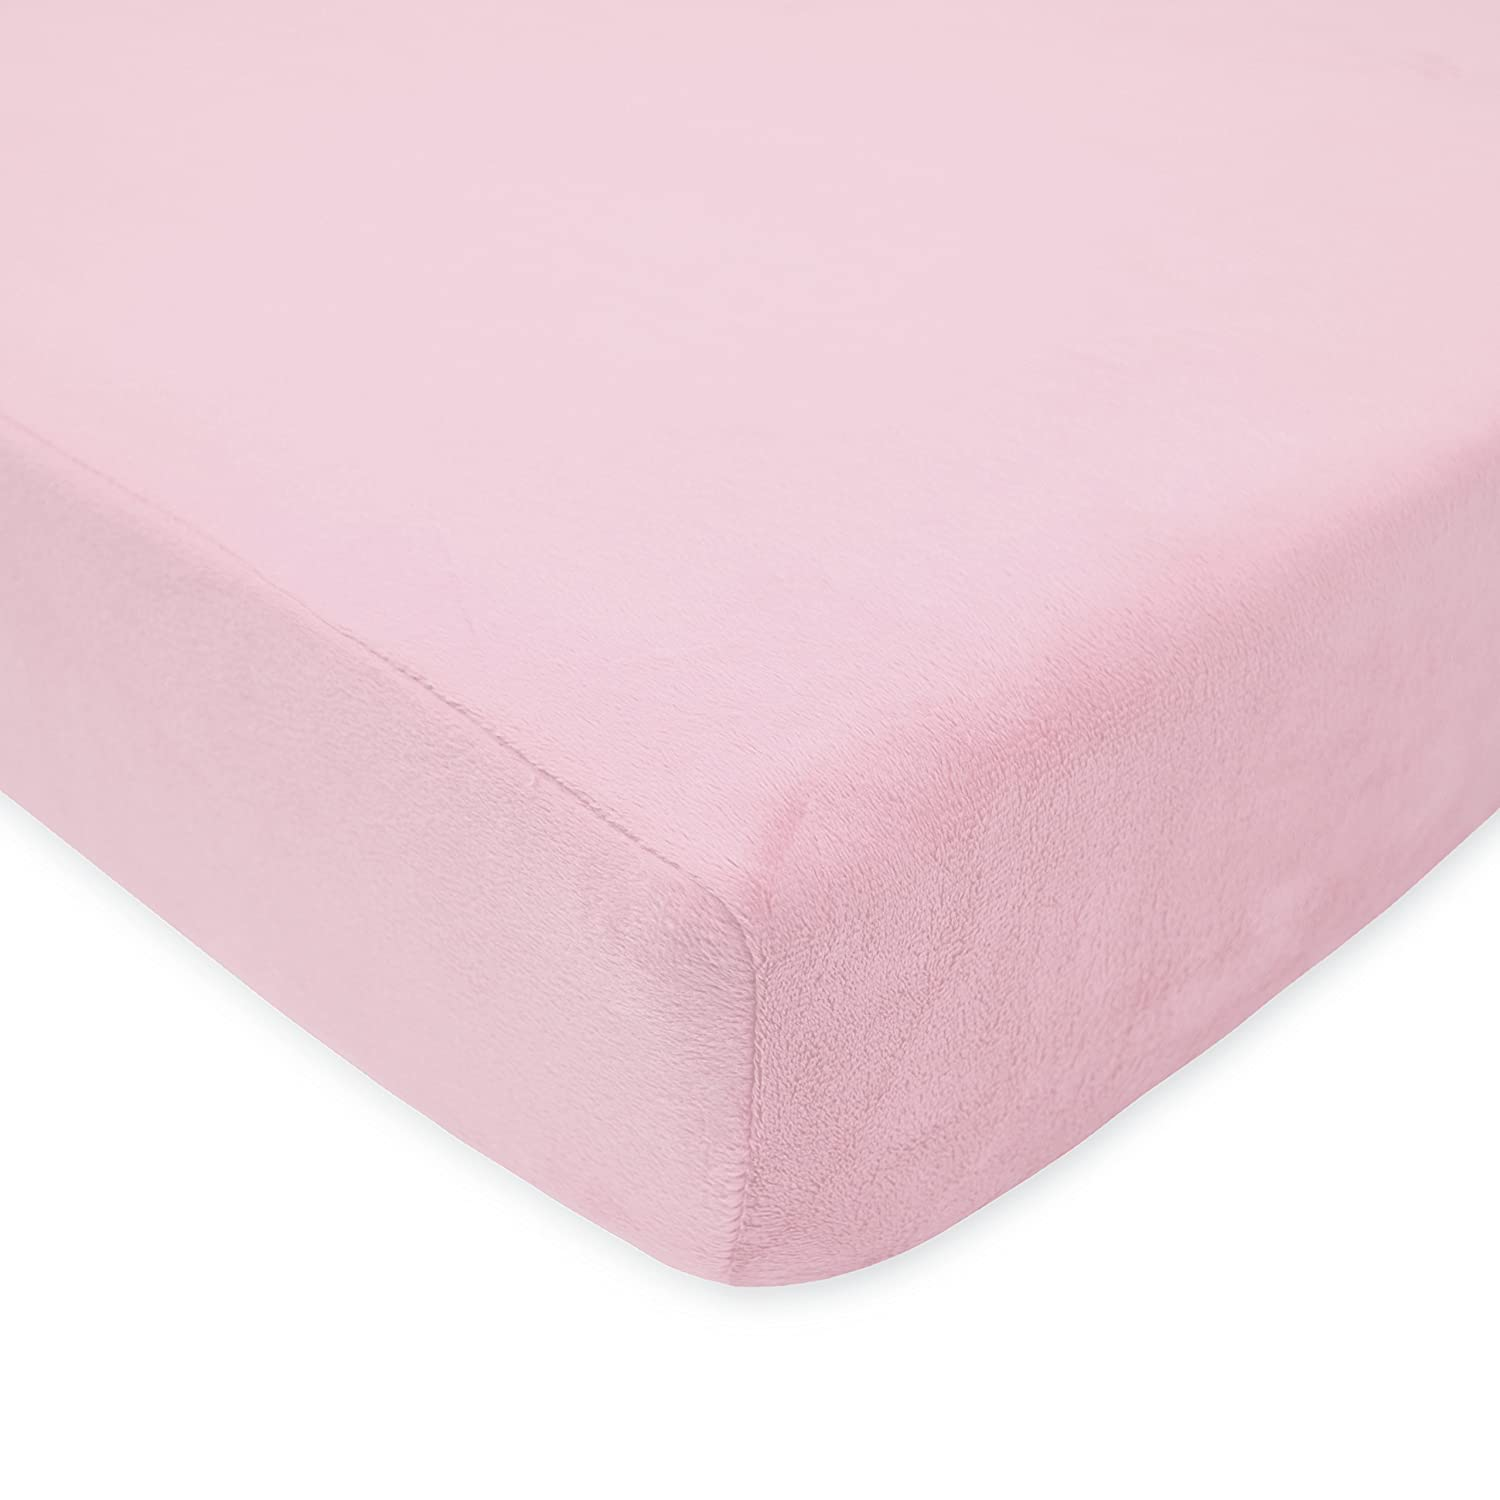 Best crib sheets for baby with eczema - Amazon Com American Baby Company Heavenly Soft Chenille Fitted Crib Sheet Pink Crib Fitted Sheets Baby